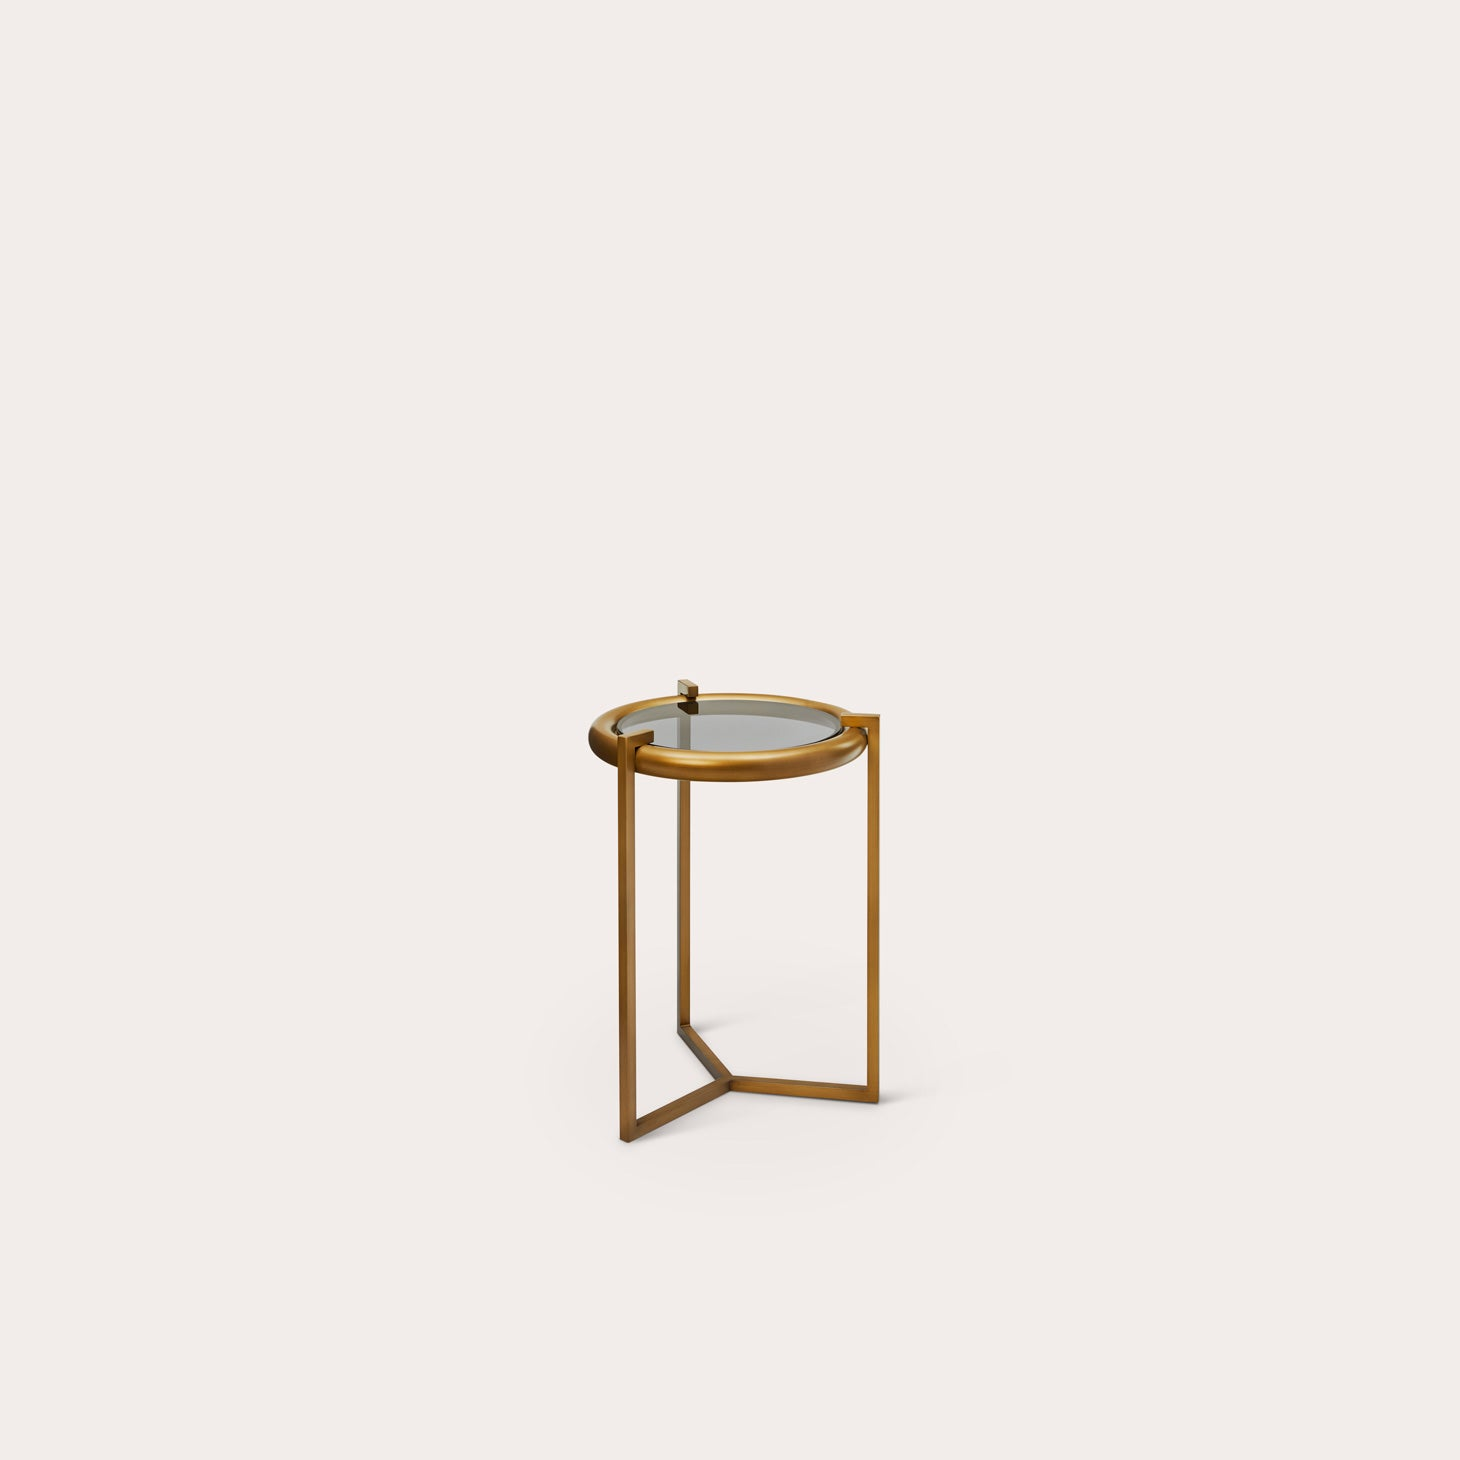 Rua Tucuma Side Table - Low Tables Osvaldo Tenorio Designer Furniture Sku: 782-230-10026